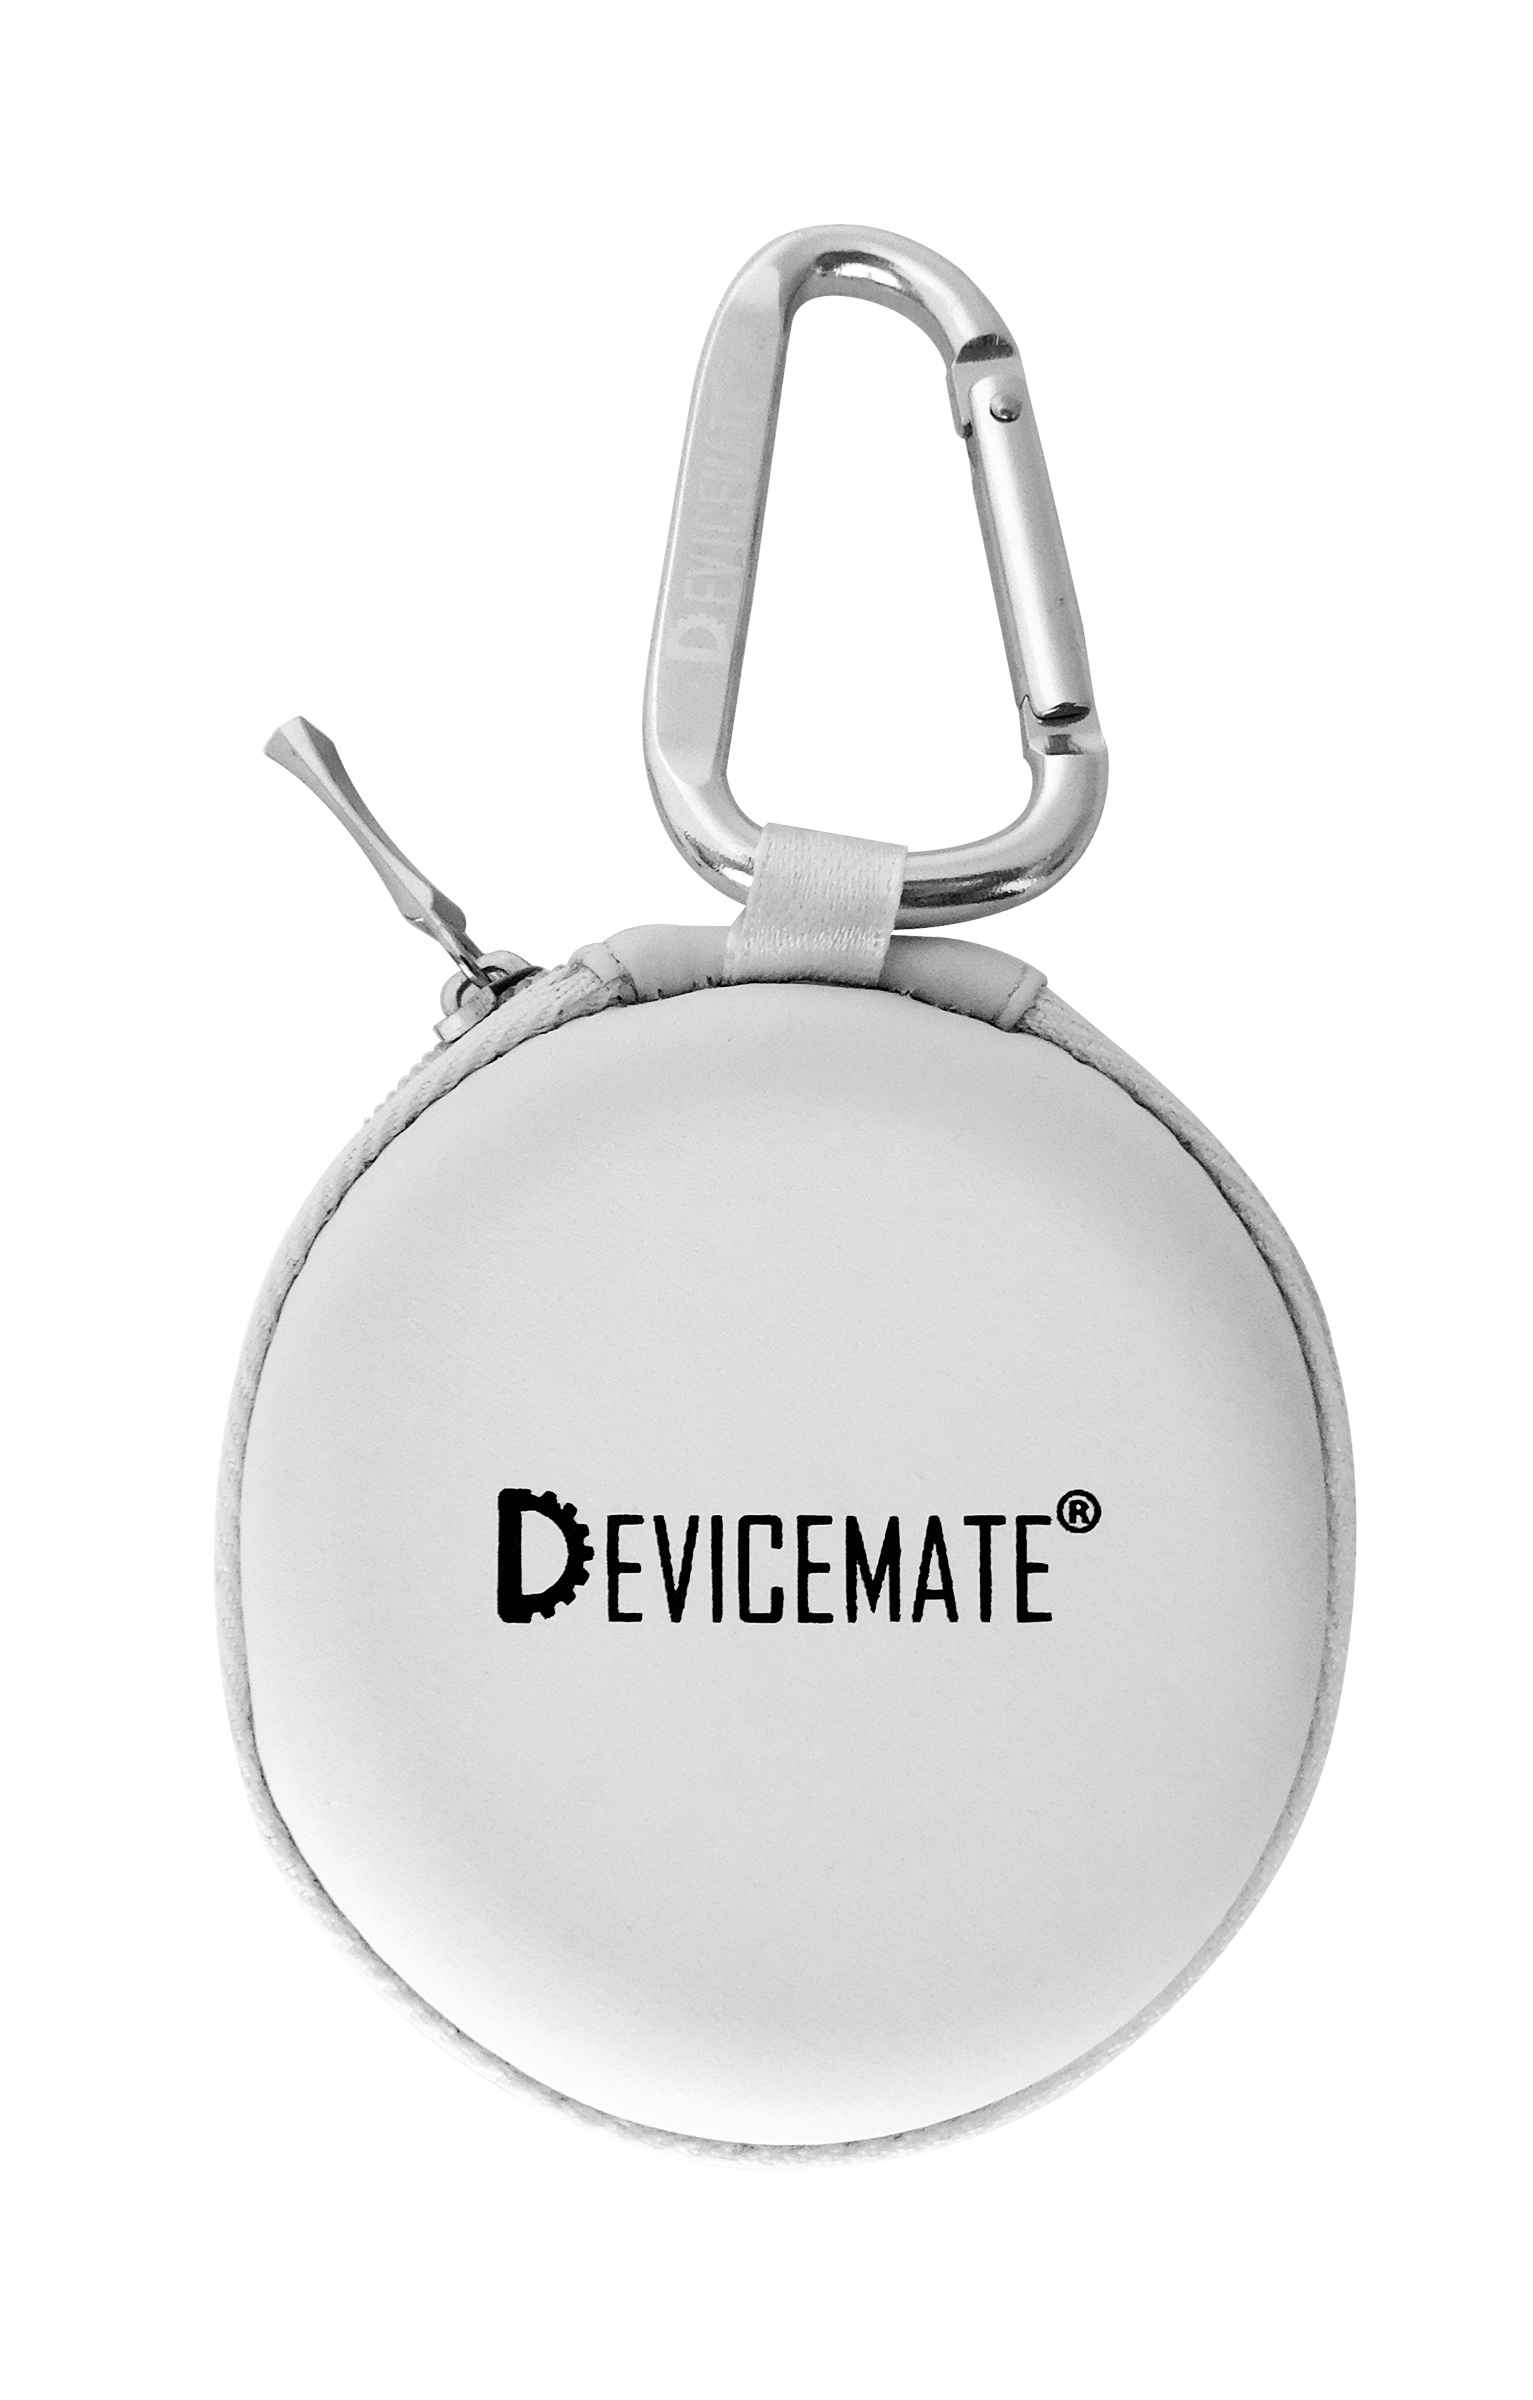 Devicemate SD 455-GWT Earphones w/mic for iPhone [GlcWhite] Case